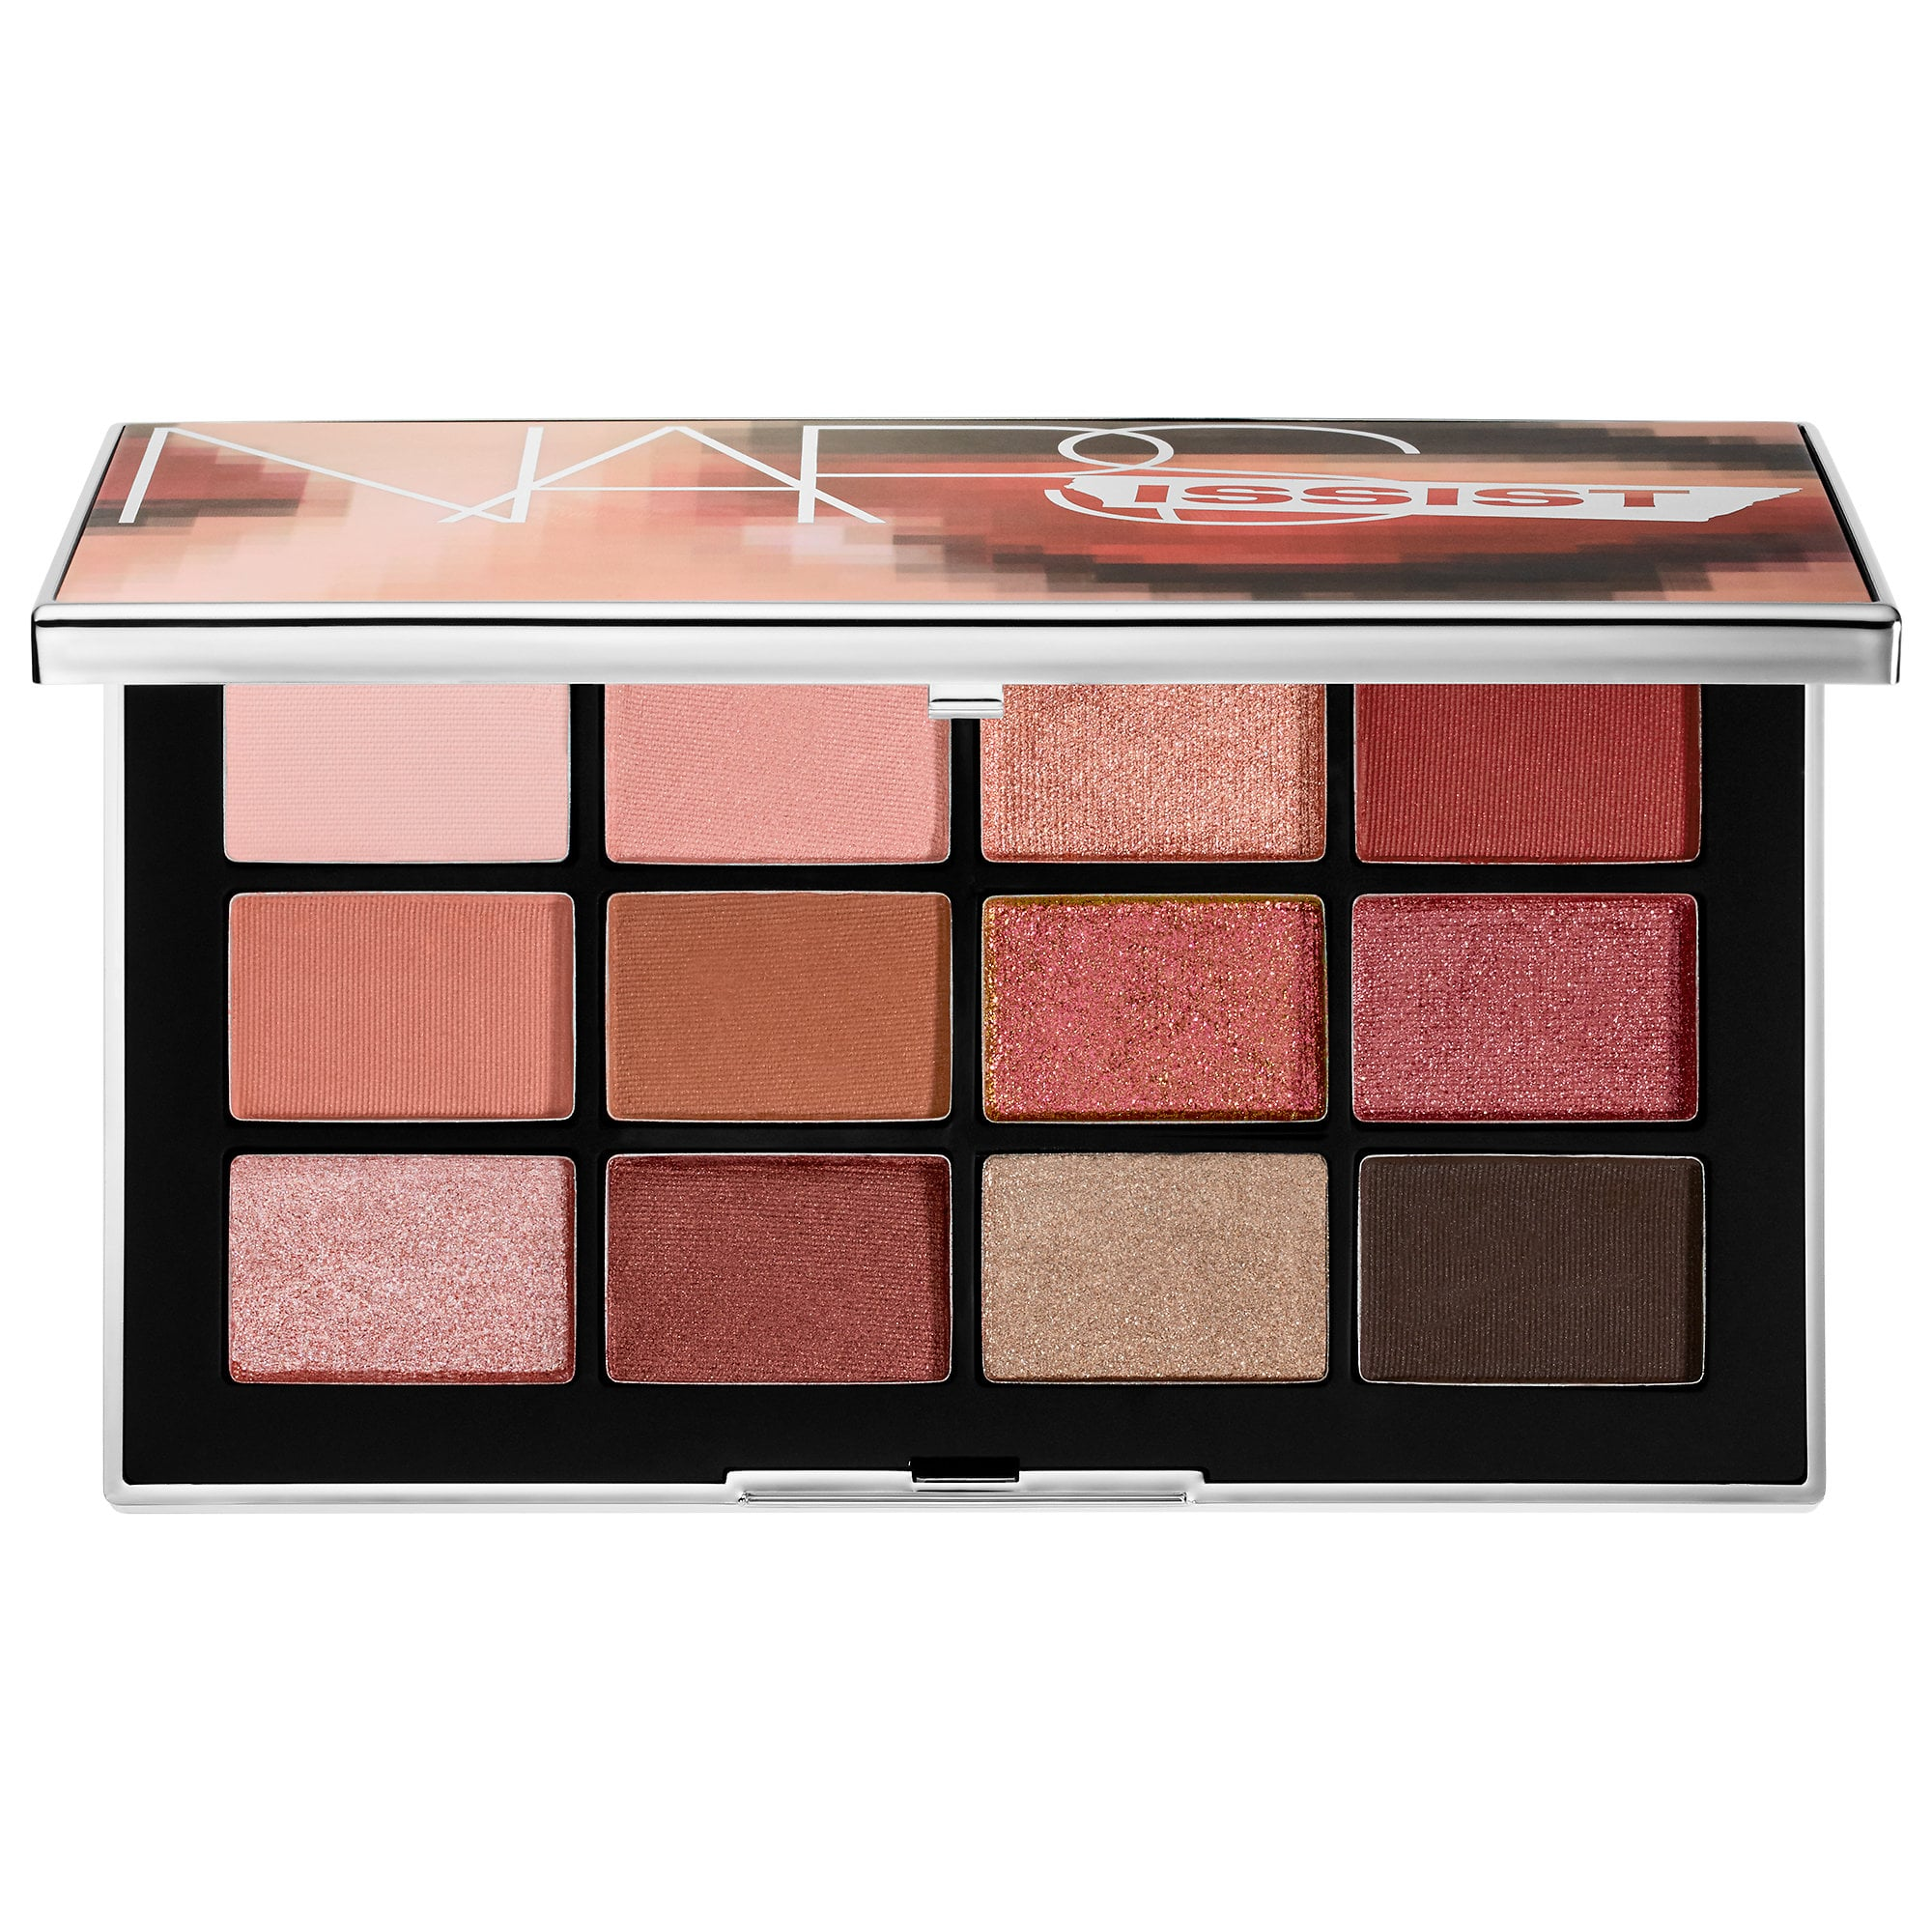 Nars Rose Gold Wanted Eyeshadow Palette | POPSUGAR Beauty